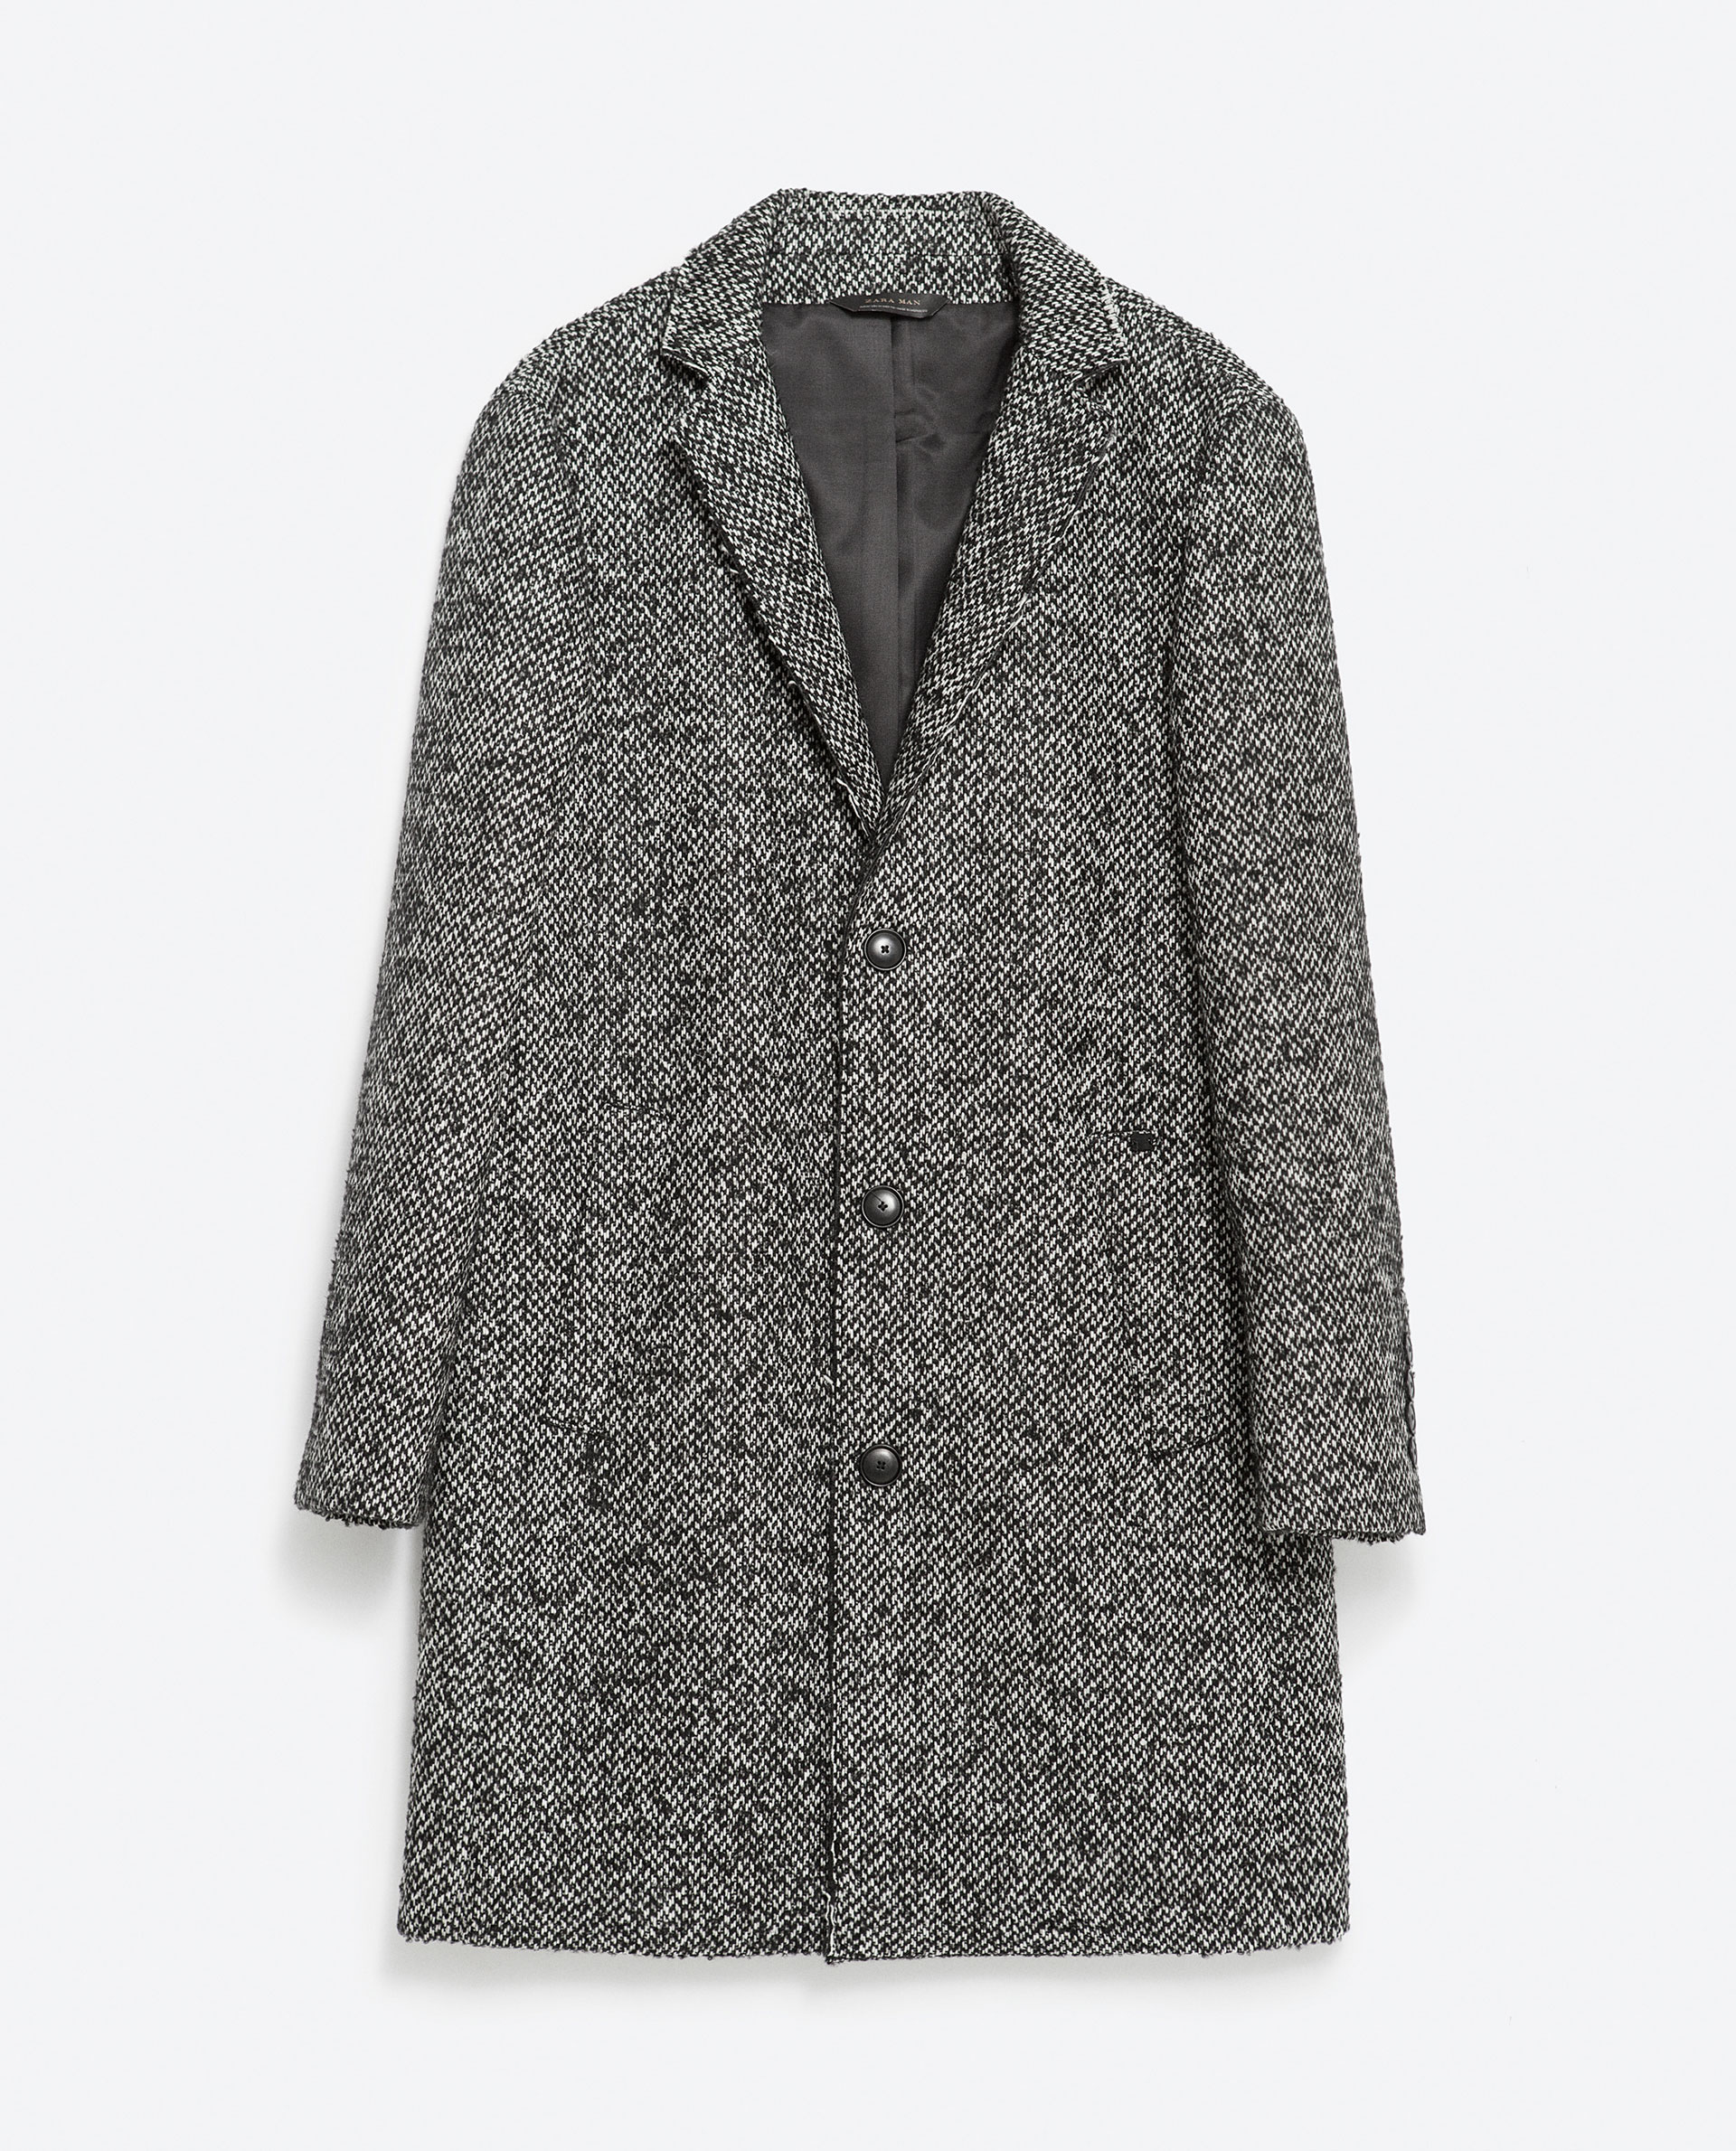 Black And White Wool Coat | Down Coat